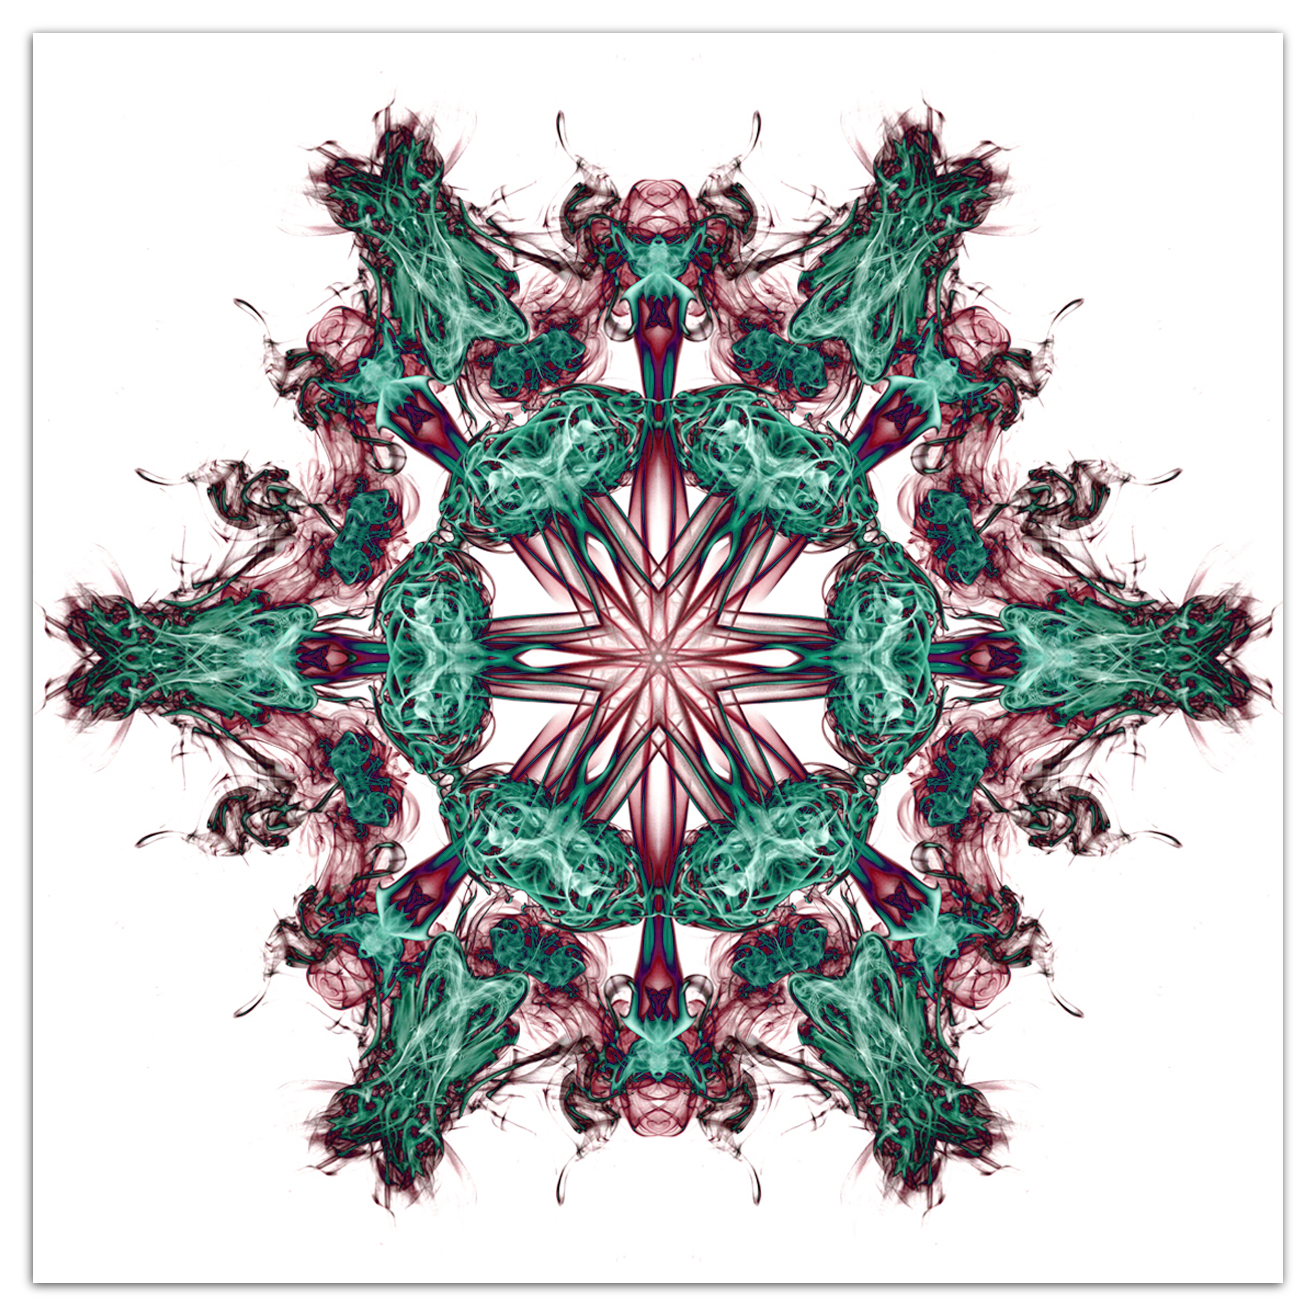 Mandala vortex 04 green